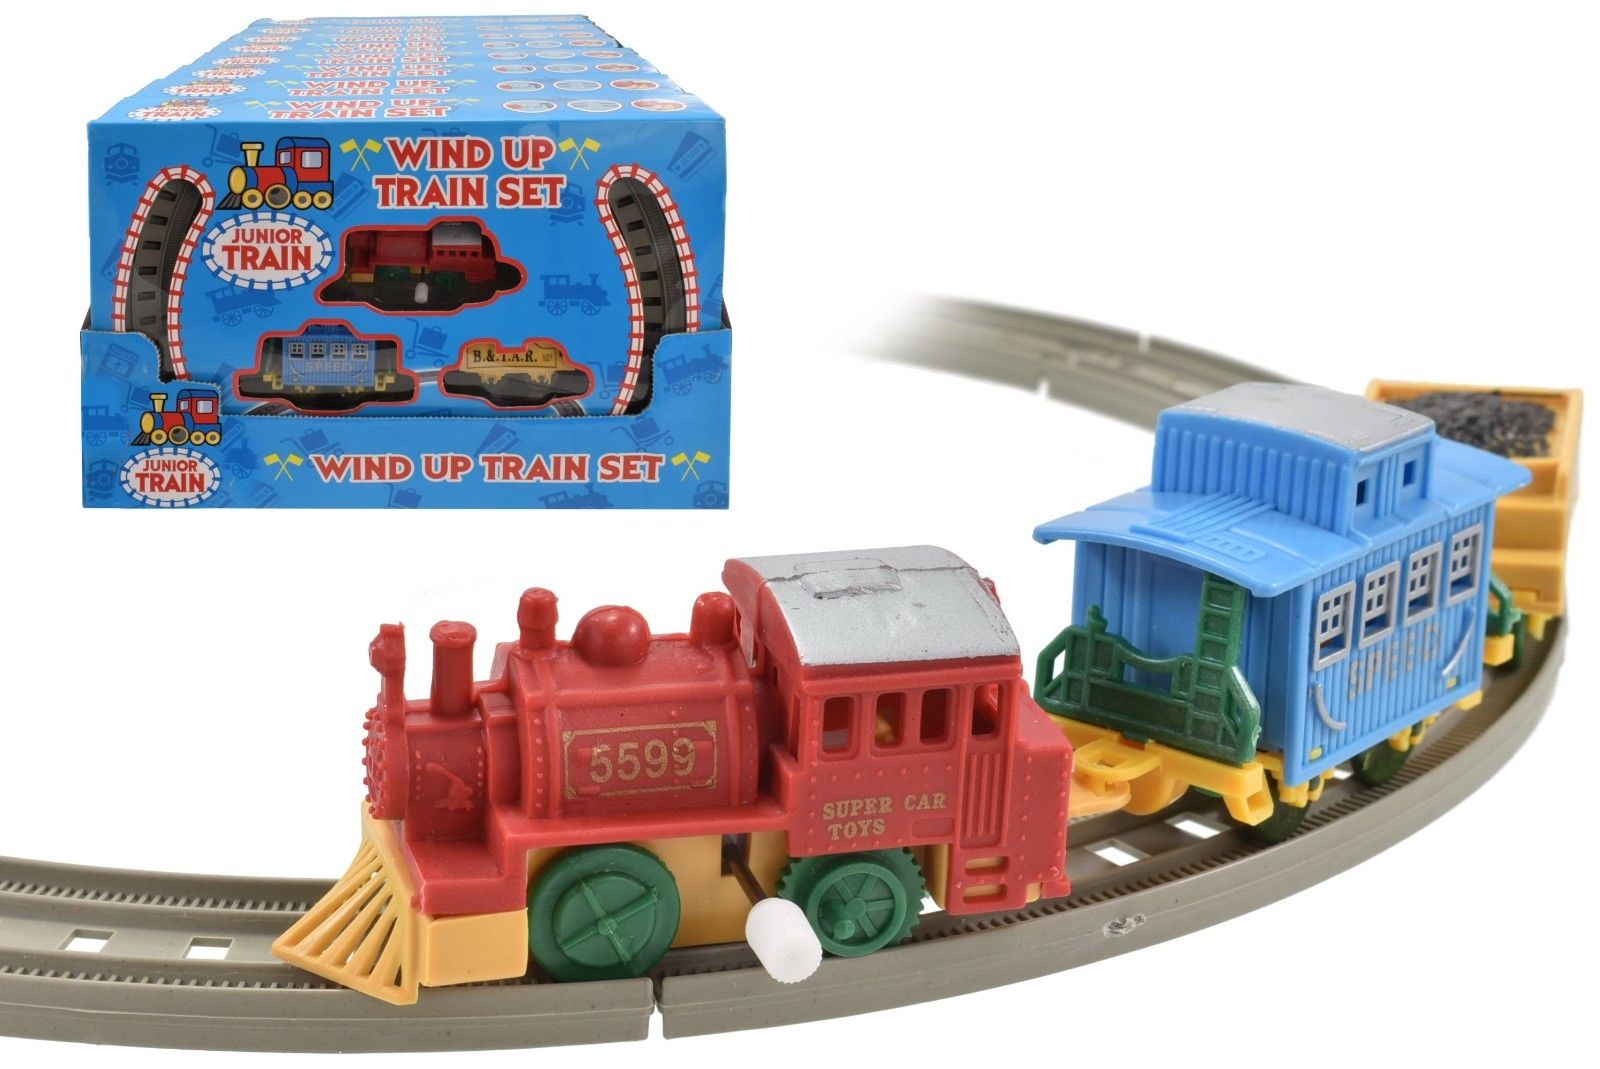 Train Track Set Wind Up Junior Train Set With Carriages For Kids 3 Years +